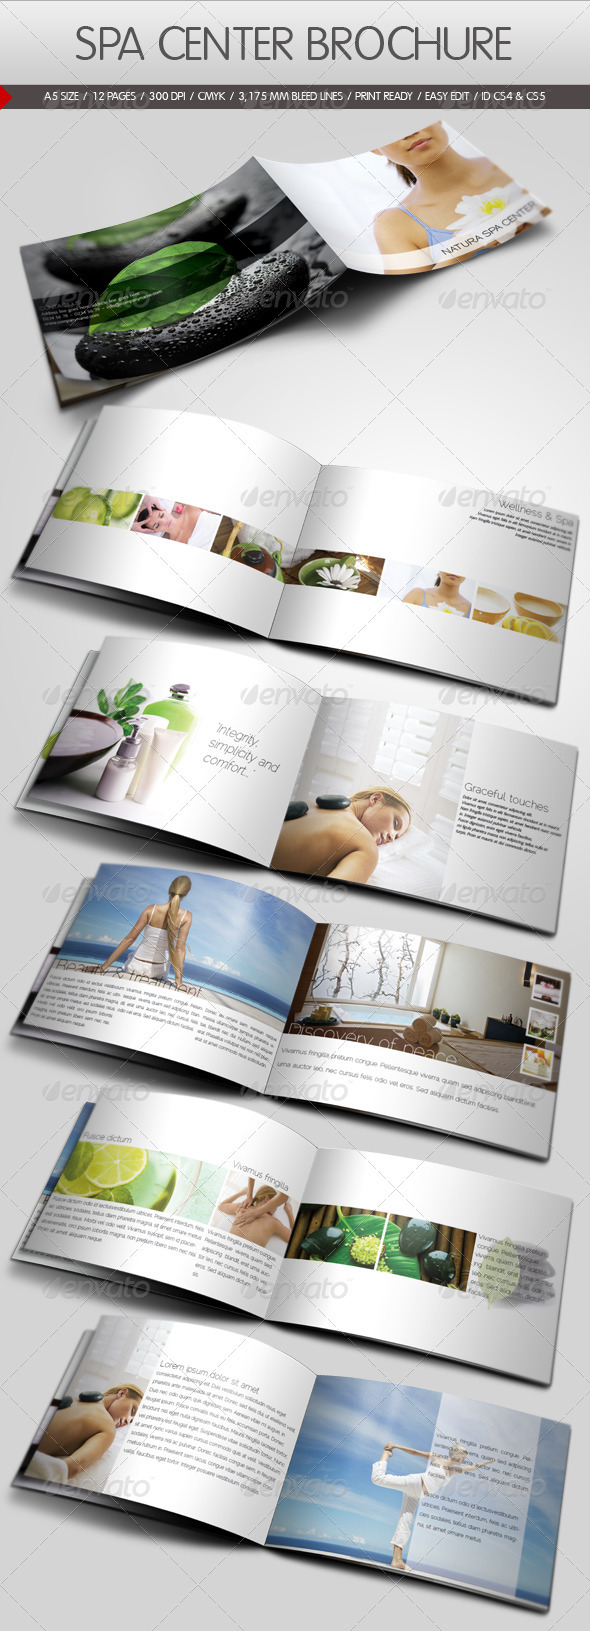 spa-center-brochure-template